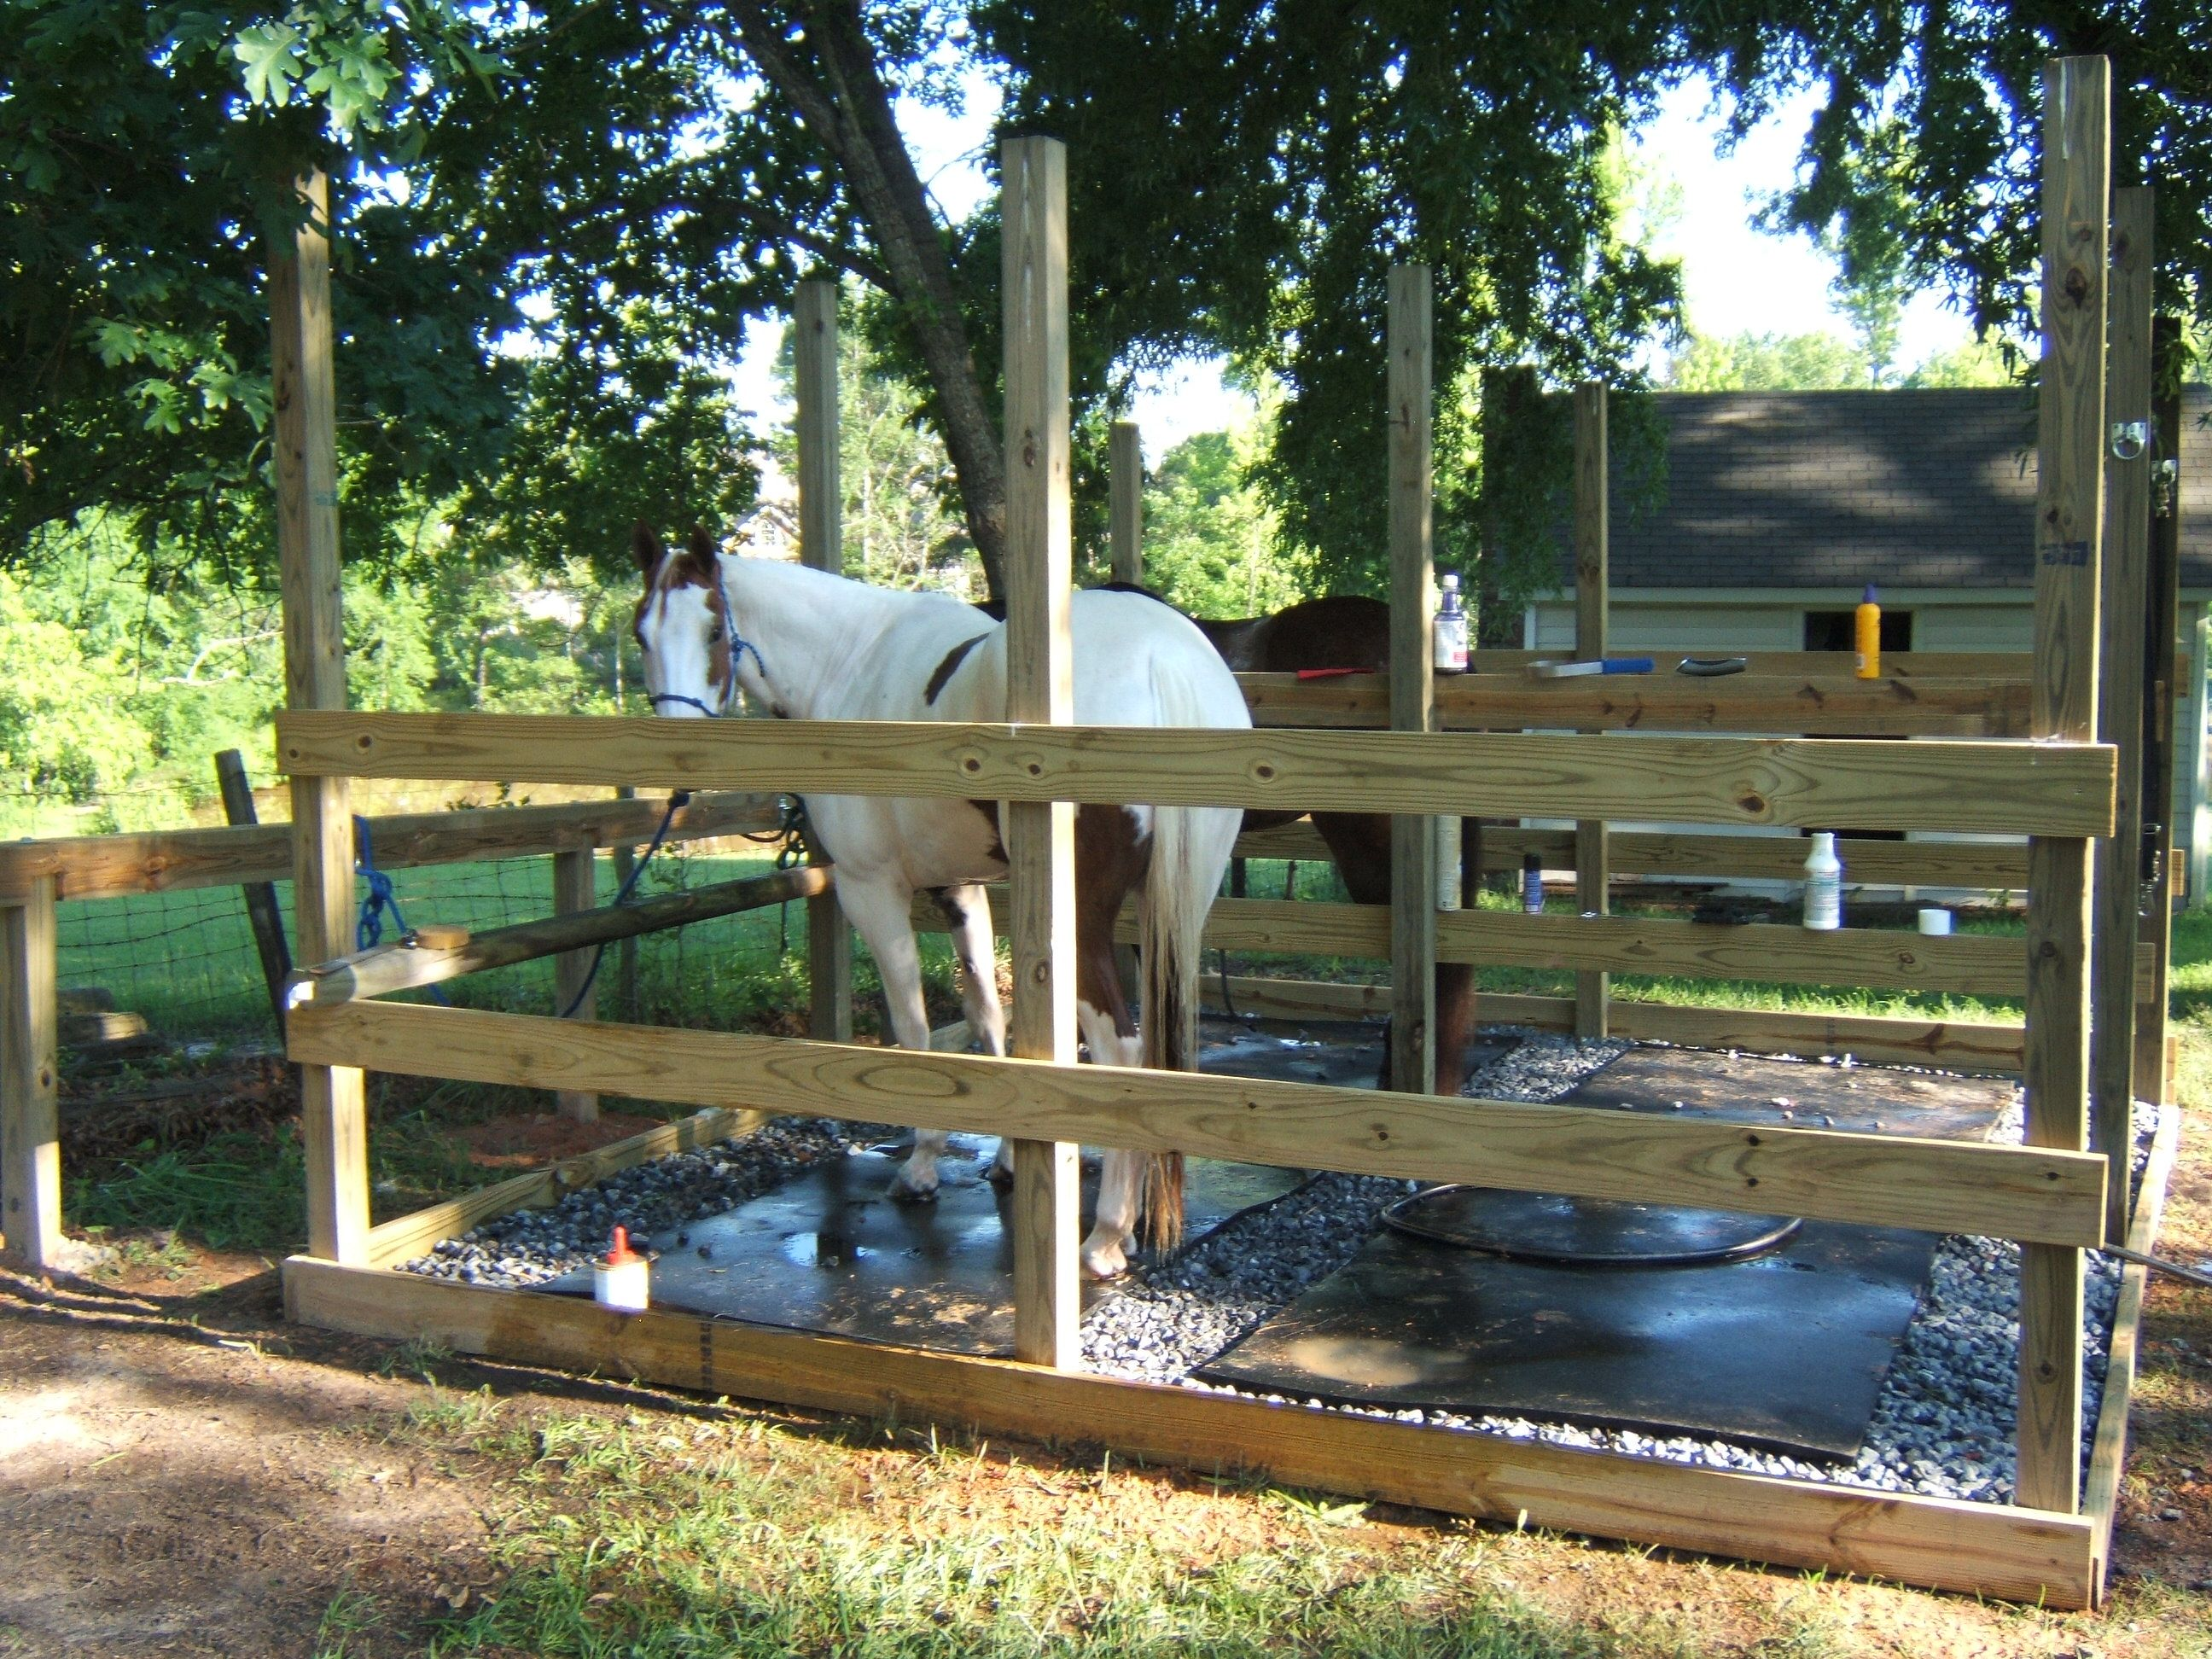 How do you clean out horse bedding in stalls/runs?